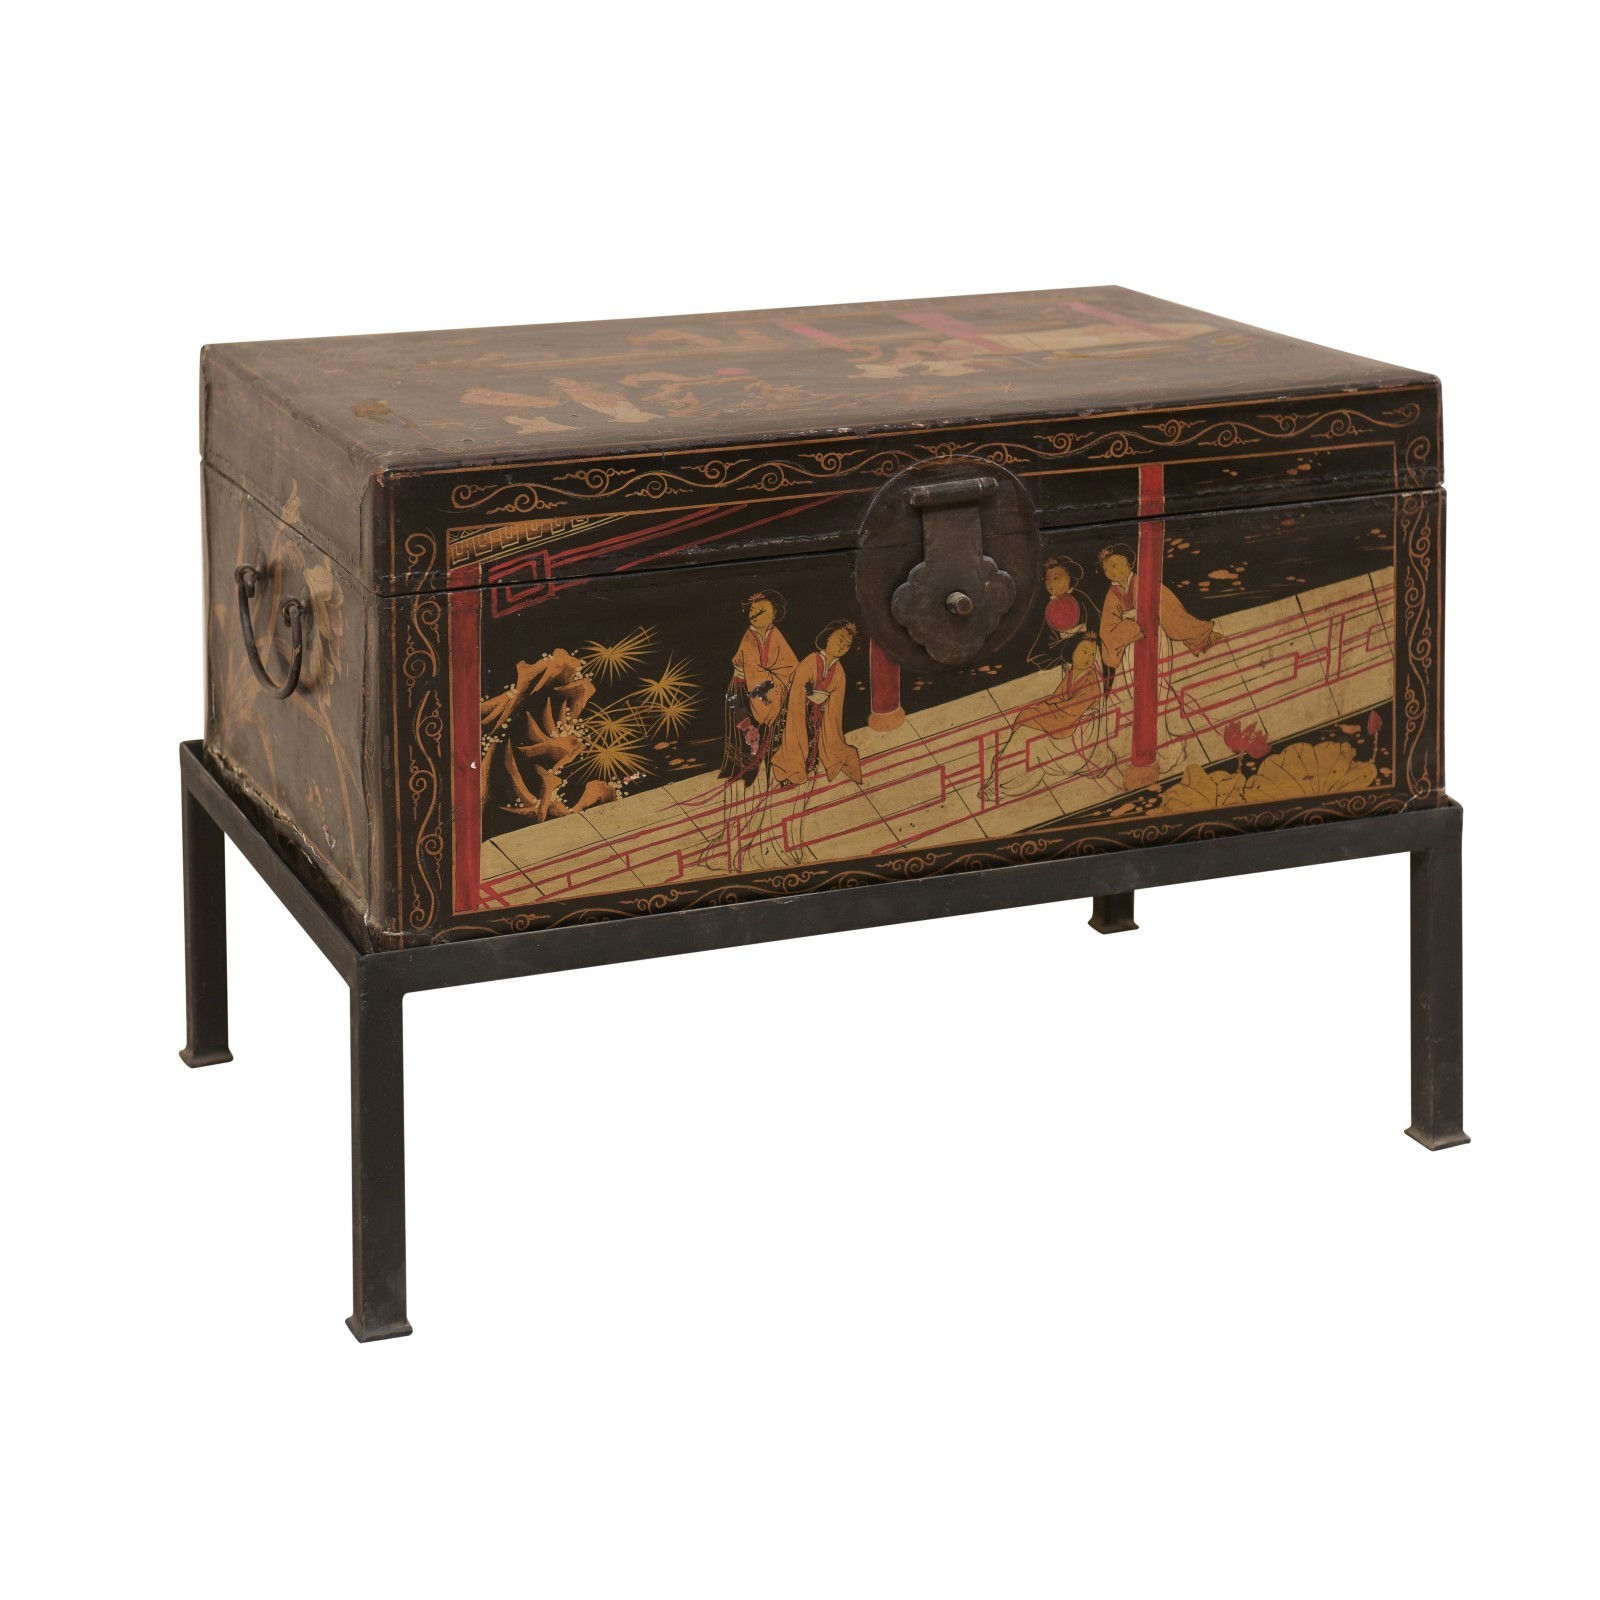 Chinese Hand-Painted Trunk on Stand